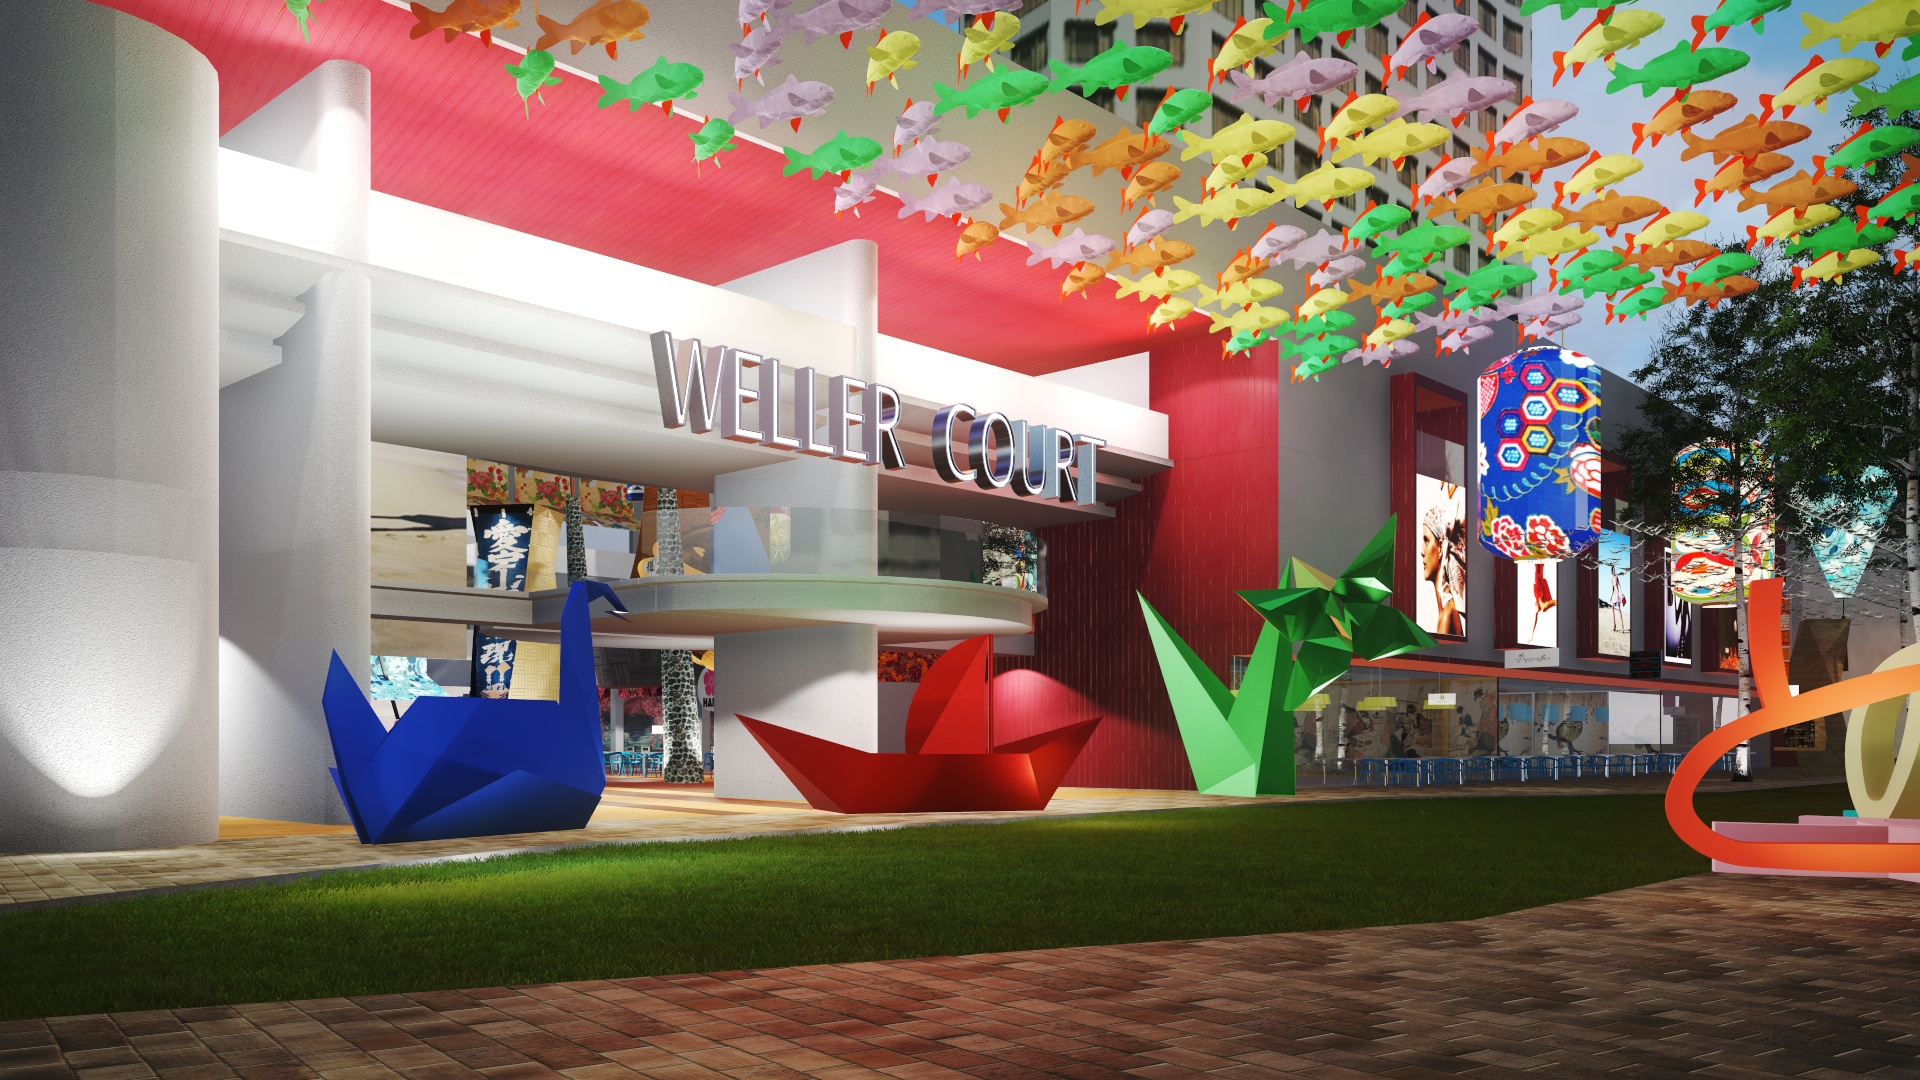 Weller Court 3d rendering